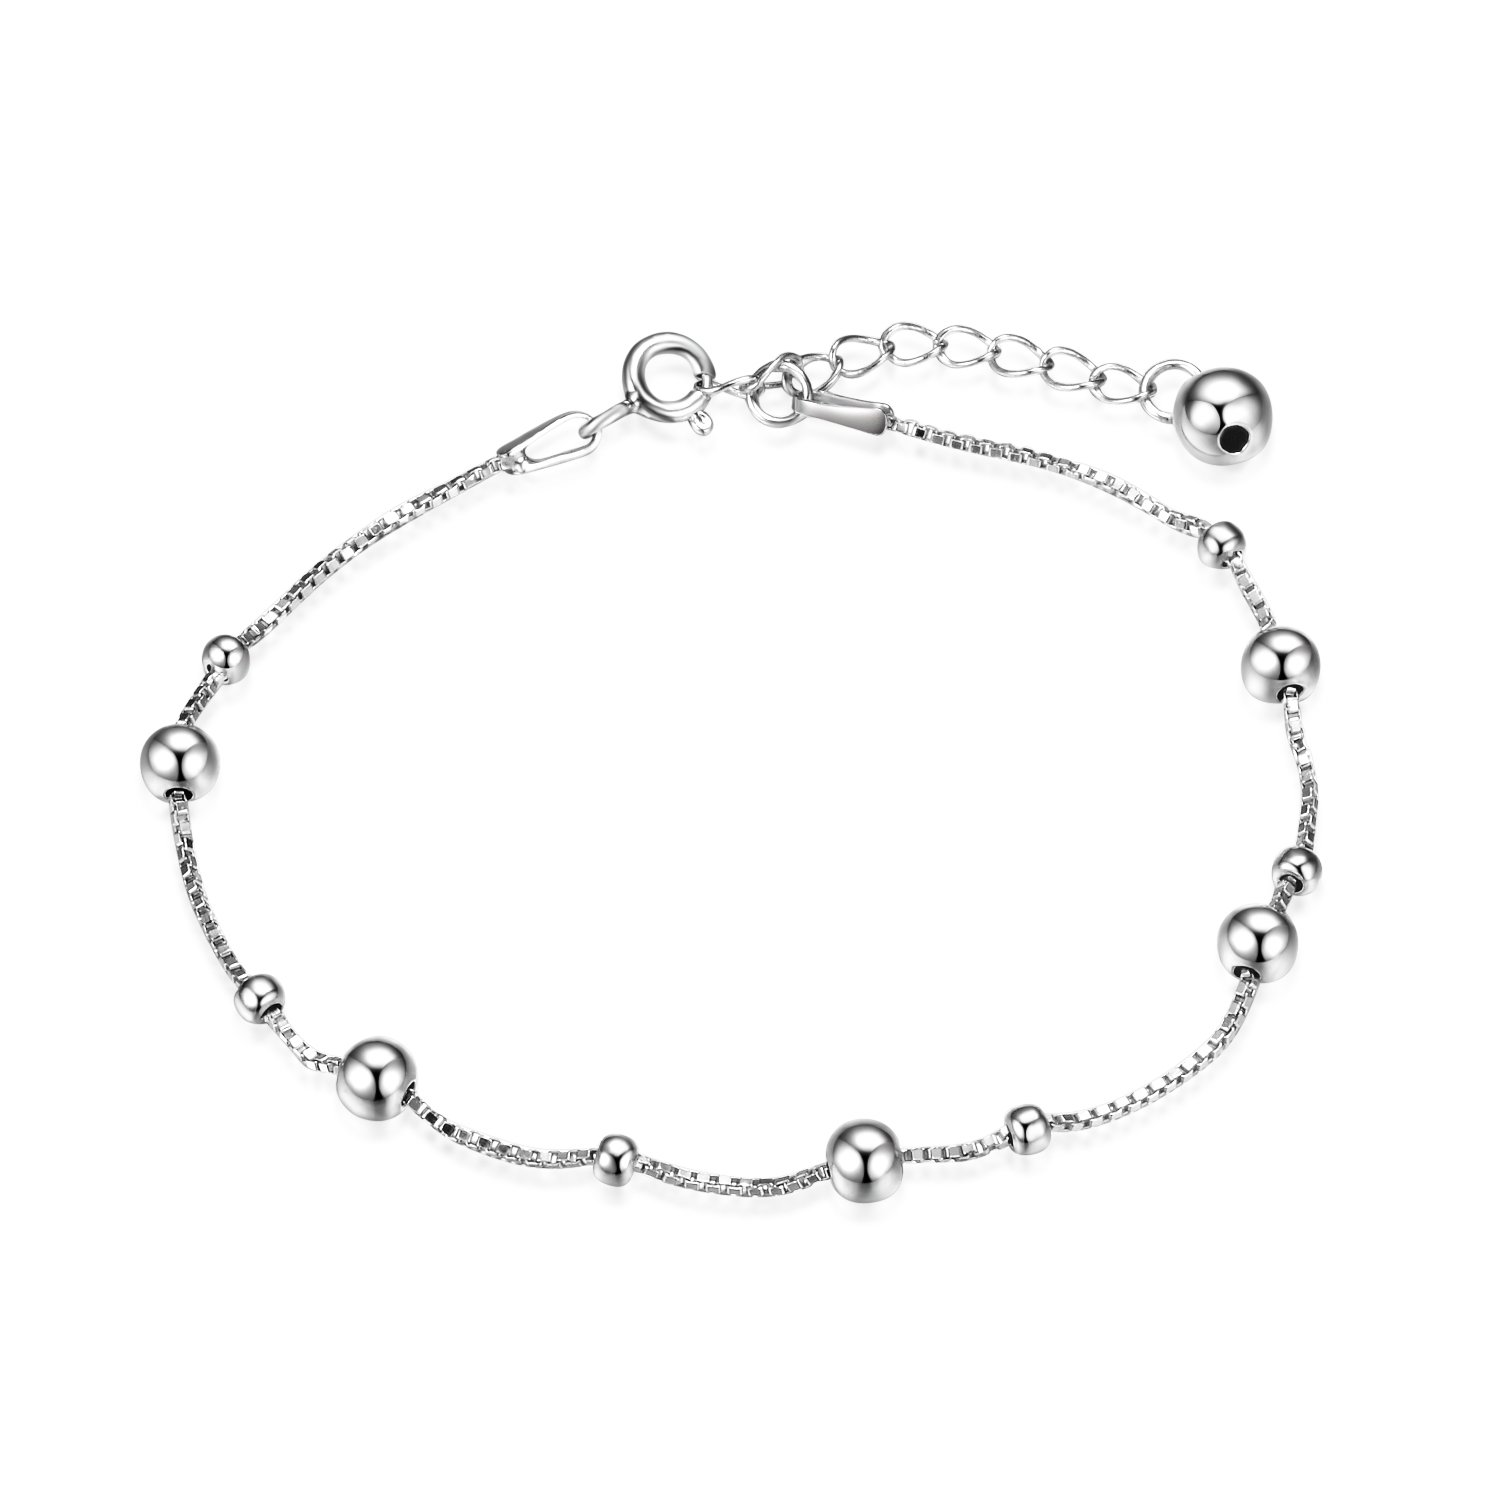 LUHE Ball Bead Chain Bracelet Sterling Silver Adjustable Nickel-Free Thin Chain Bracelets for Women Girls, 6.7'' to 8.1''